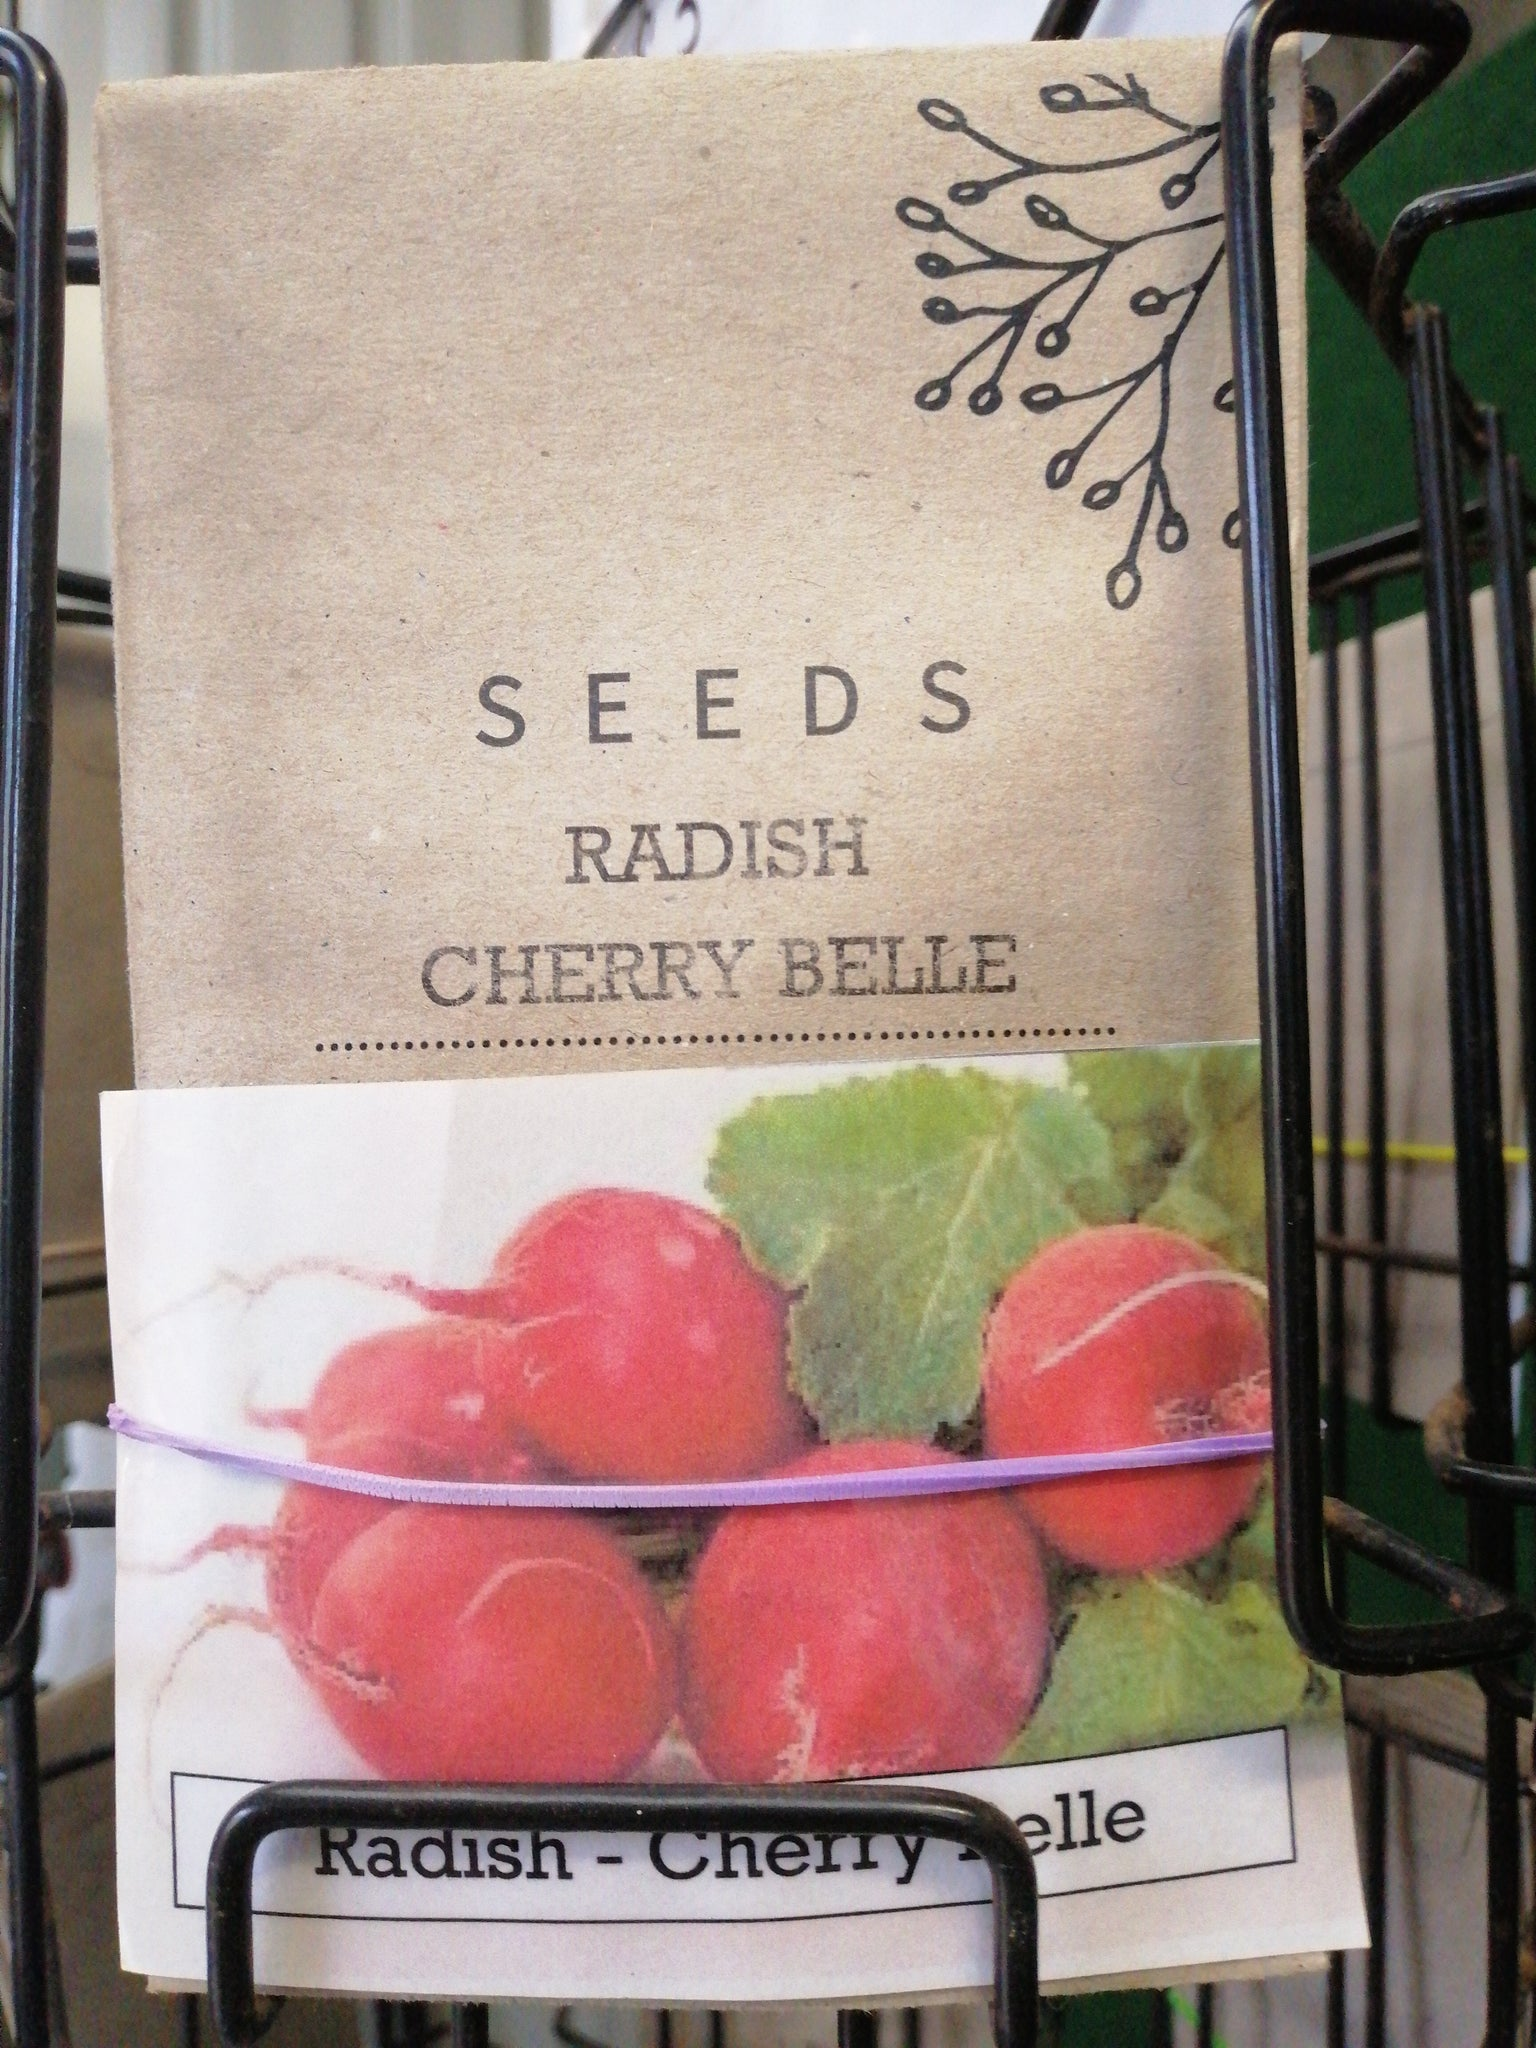 Radish - cherry belle seed packet